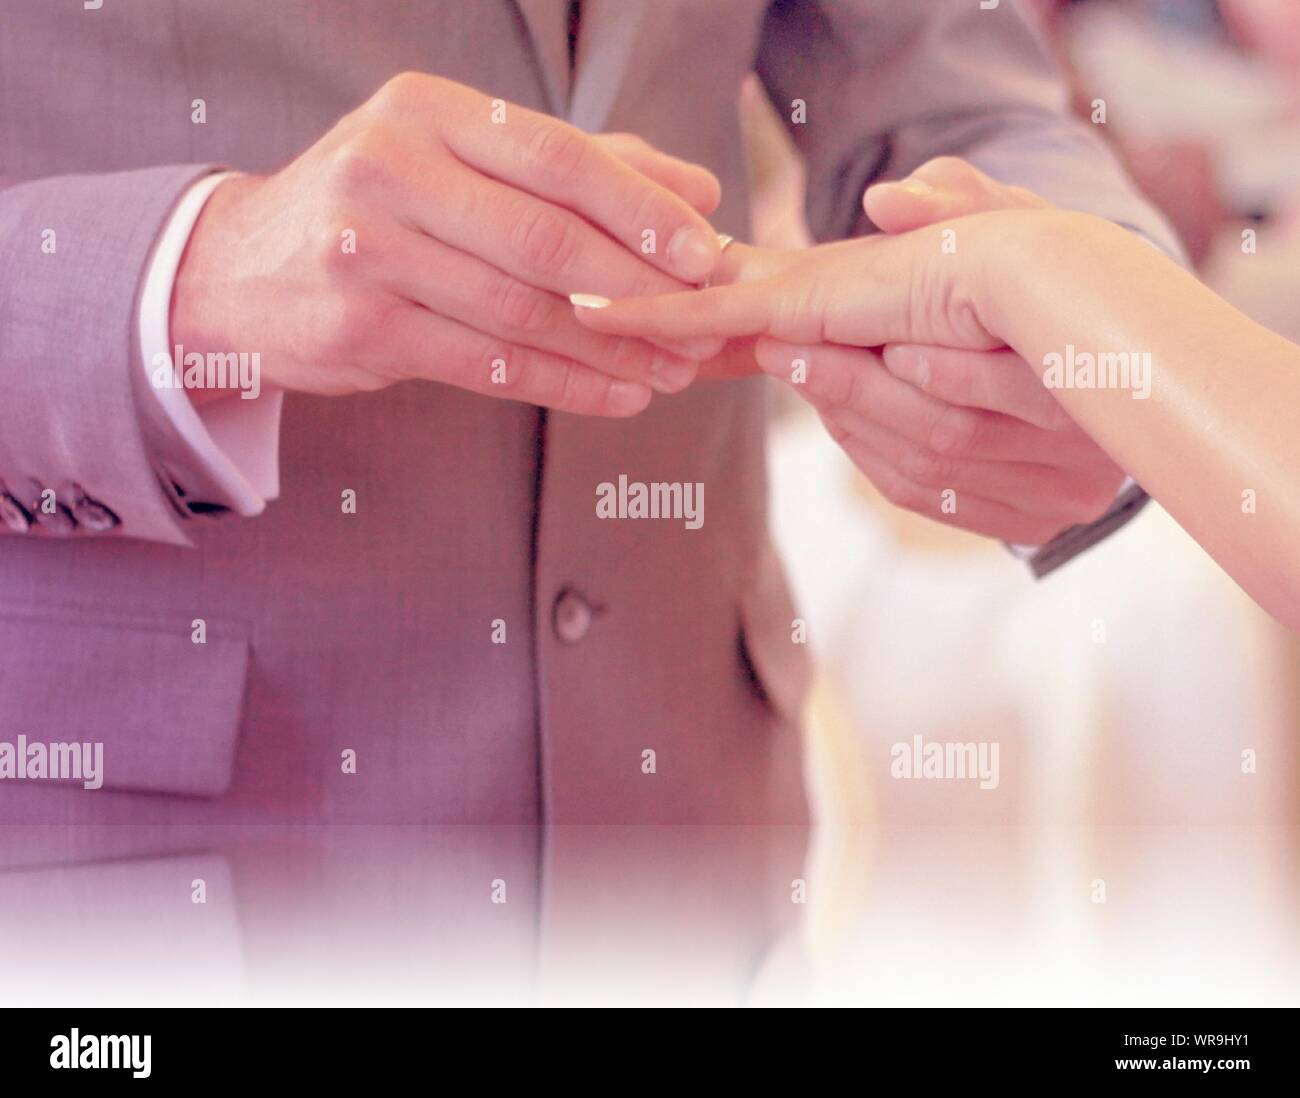 Man Sliding Ring On Woman Finger During Marriage Ceremony Stock Photo